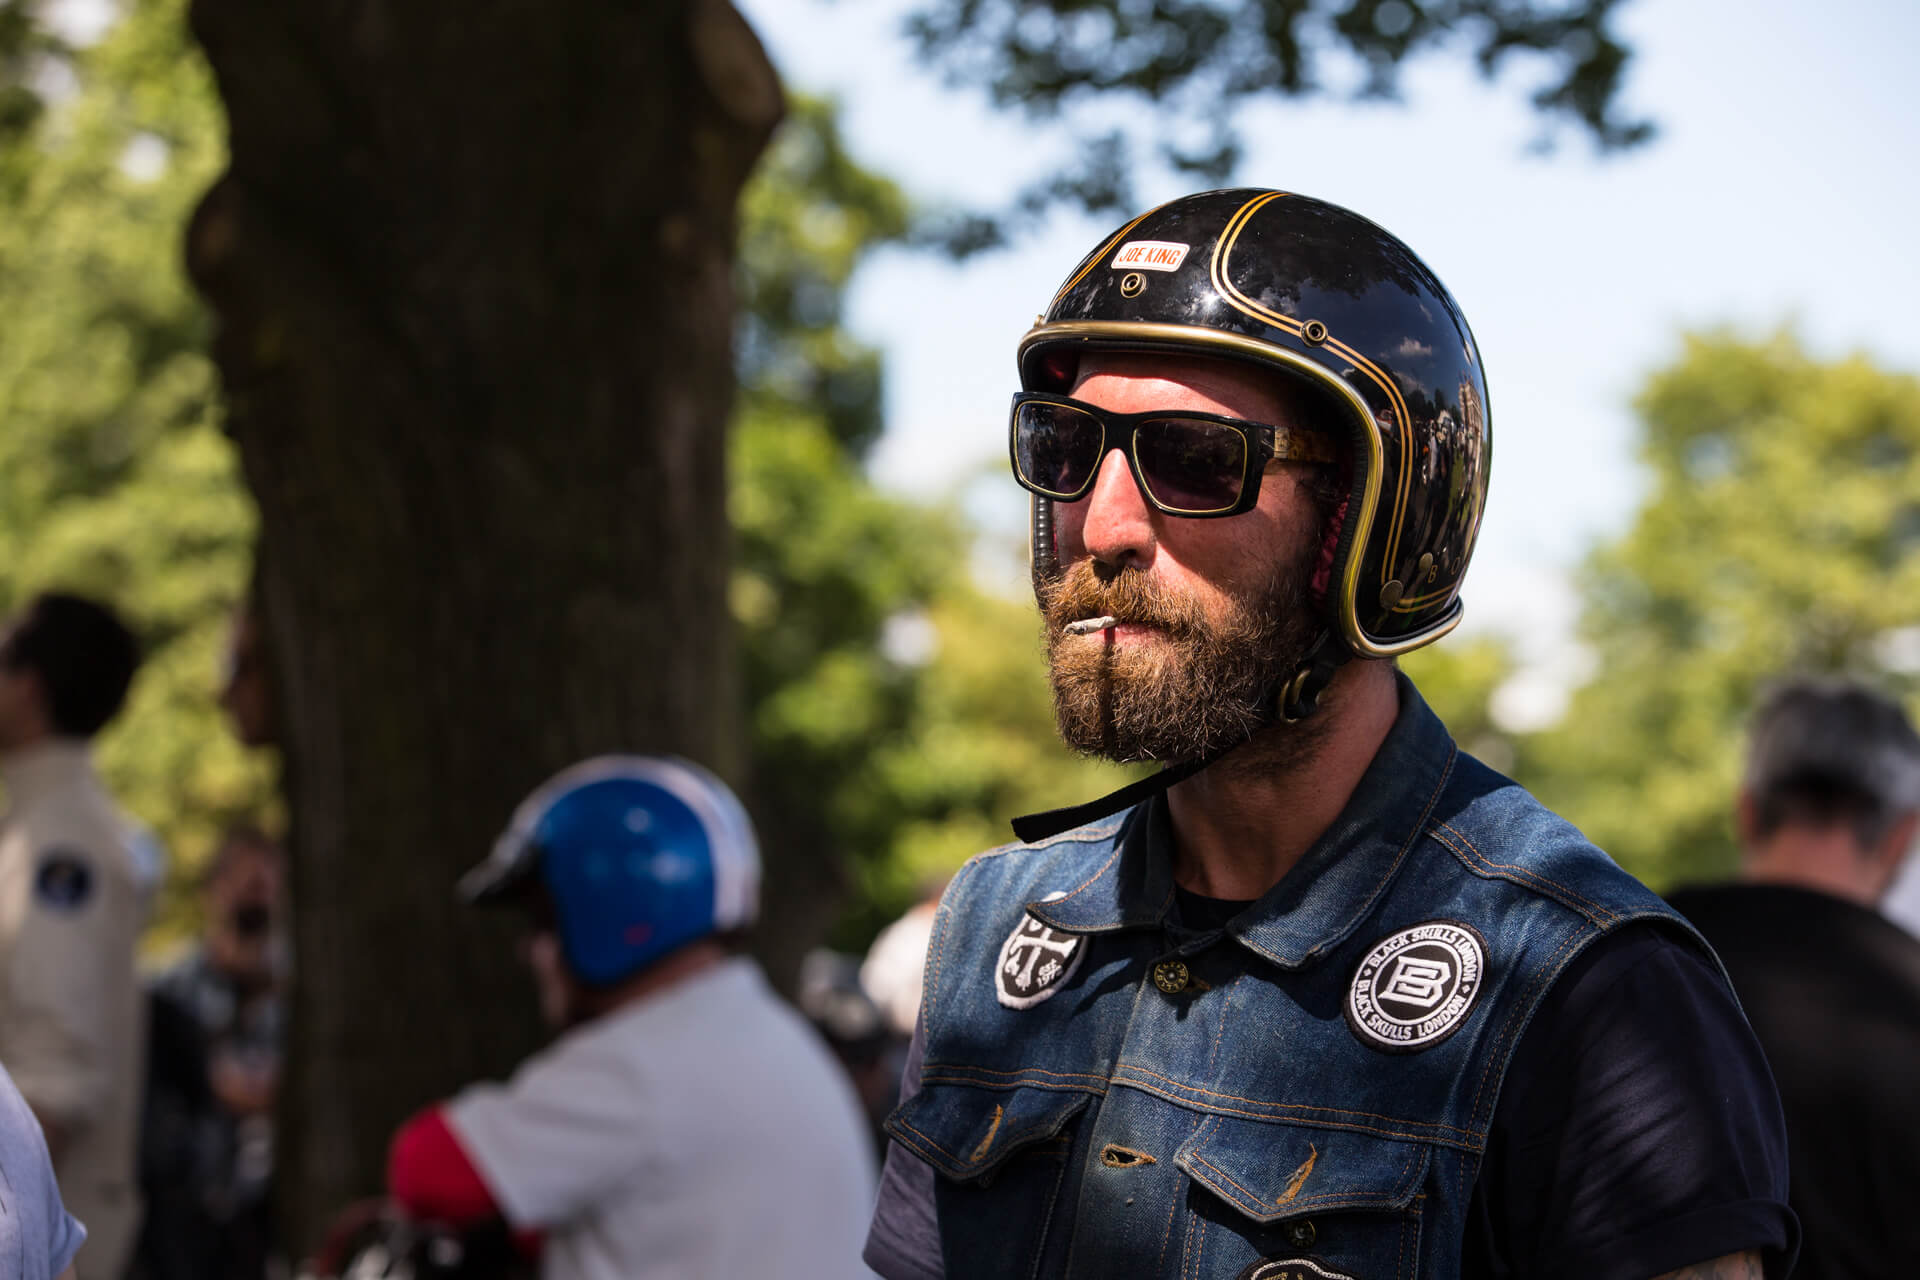 Malle Mile, Event, Motorcycle, Richard, Summer, WeAreShuffle, Agency, Photography, Film, Production, Malle London, Triumph, Flag, Biker, Field, Race, Helmet, Movember